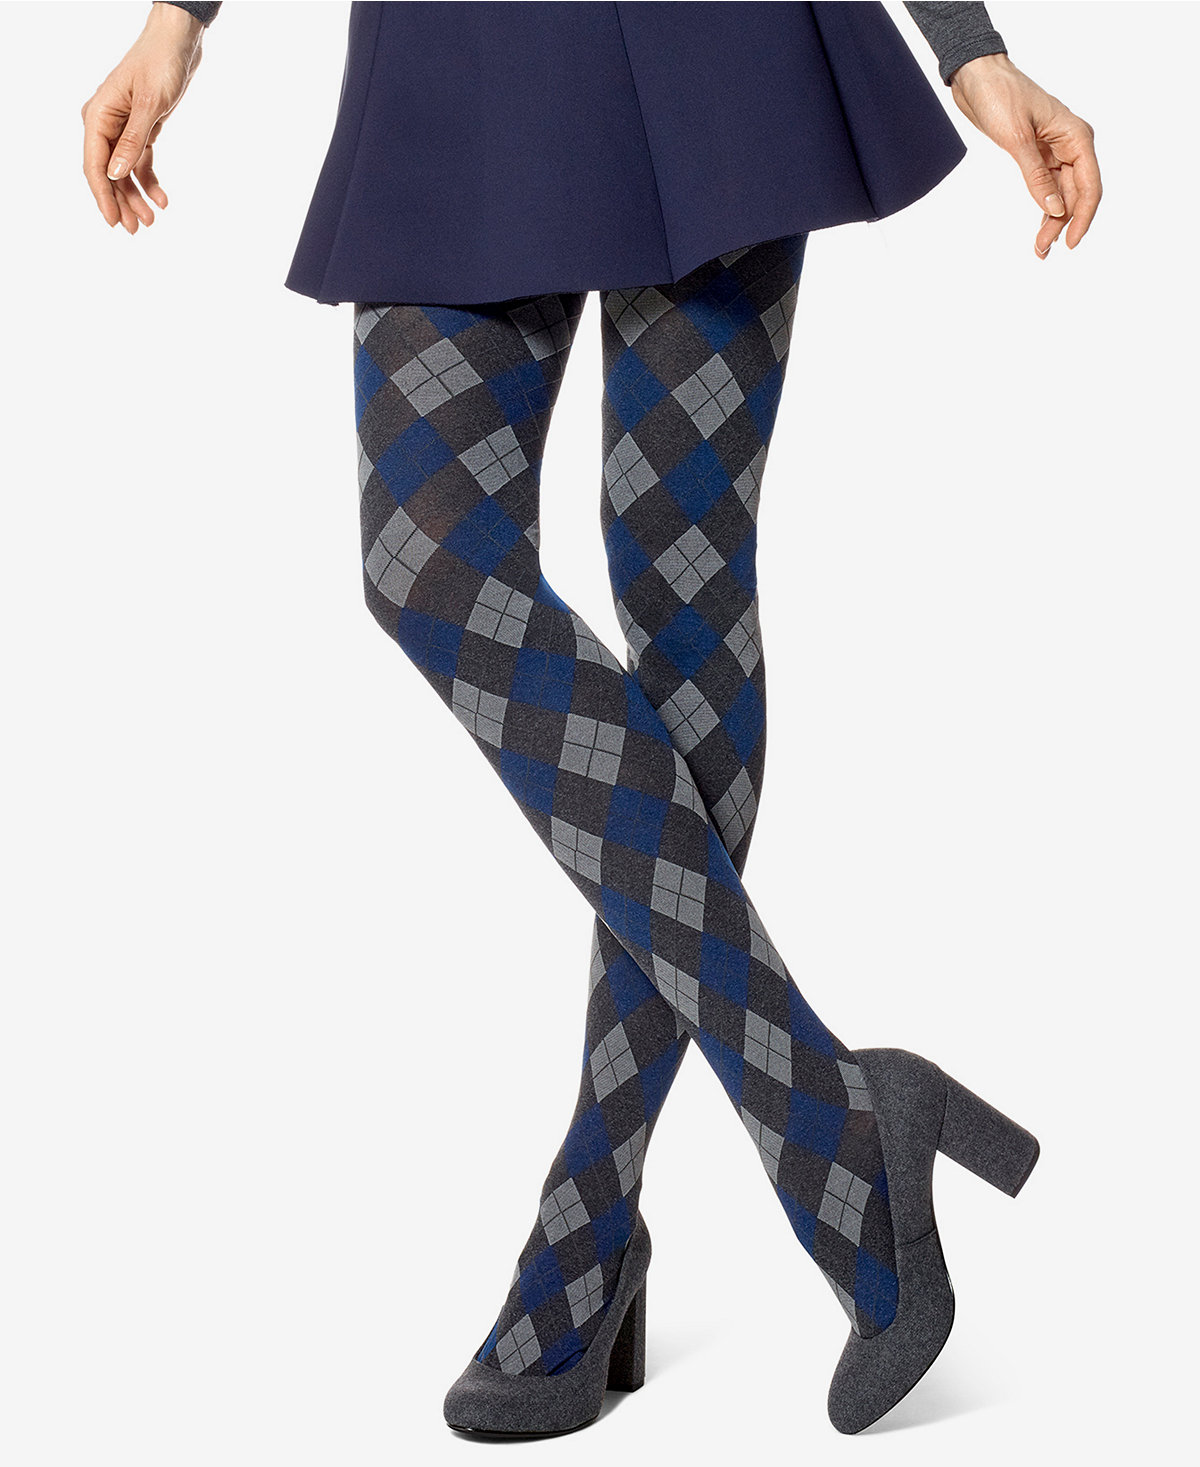 68399113d6fe6 12 pairs of tights that will keep your legs cute and warm in the ...